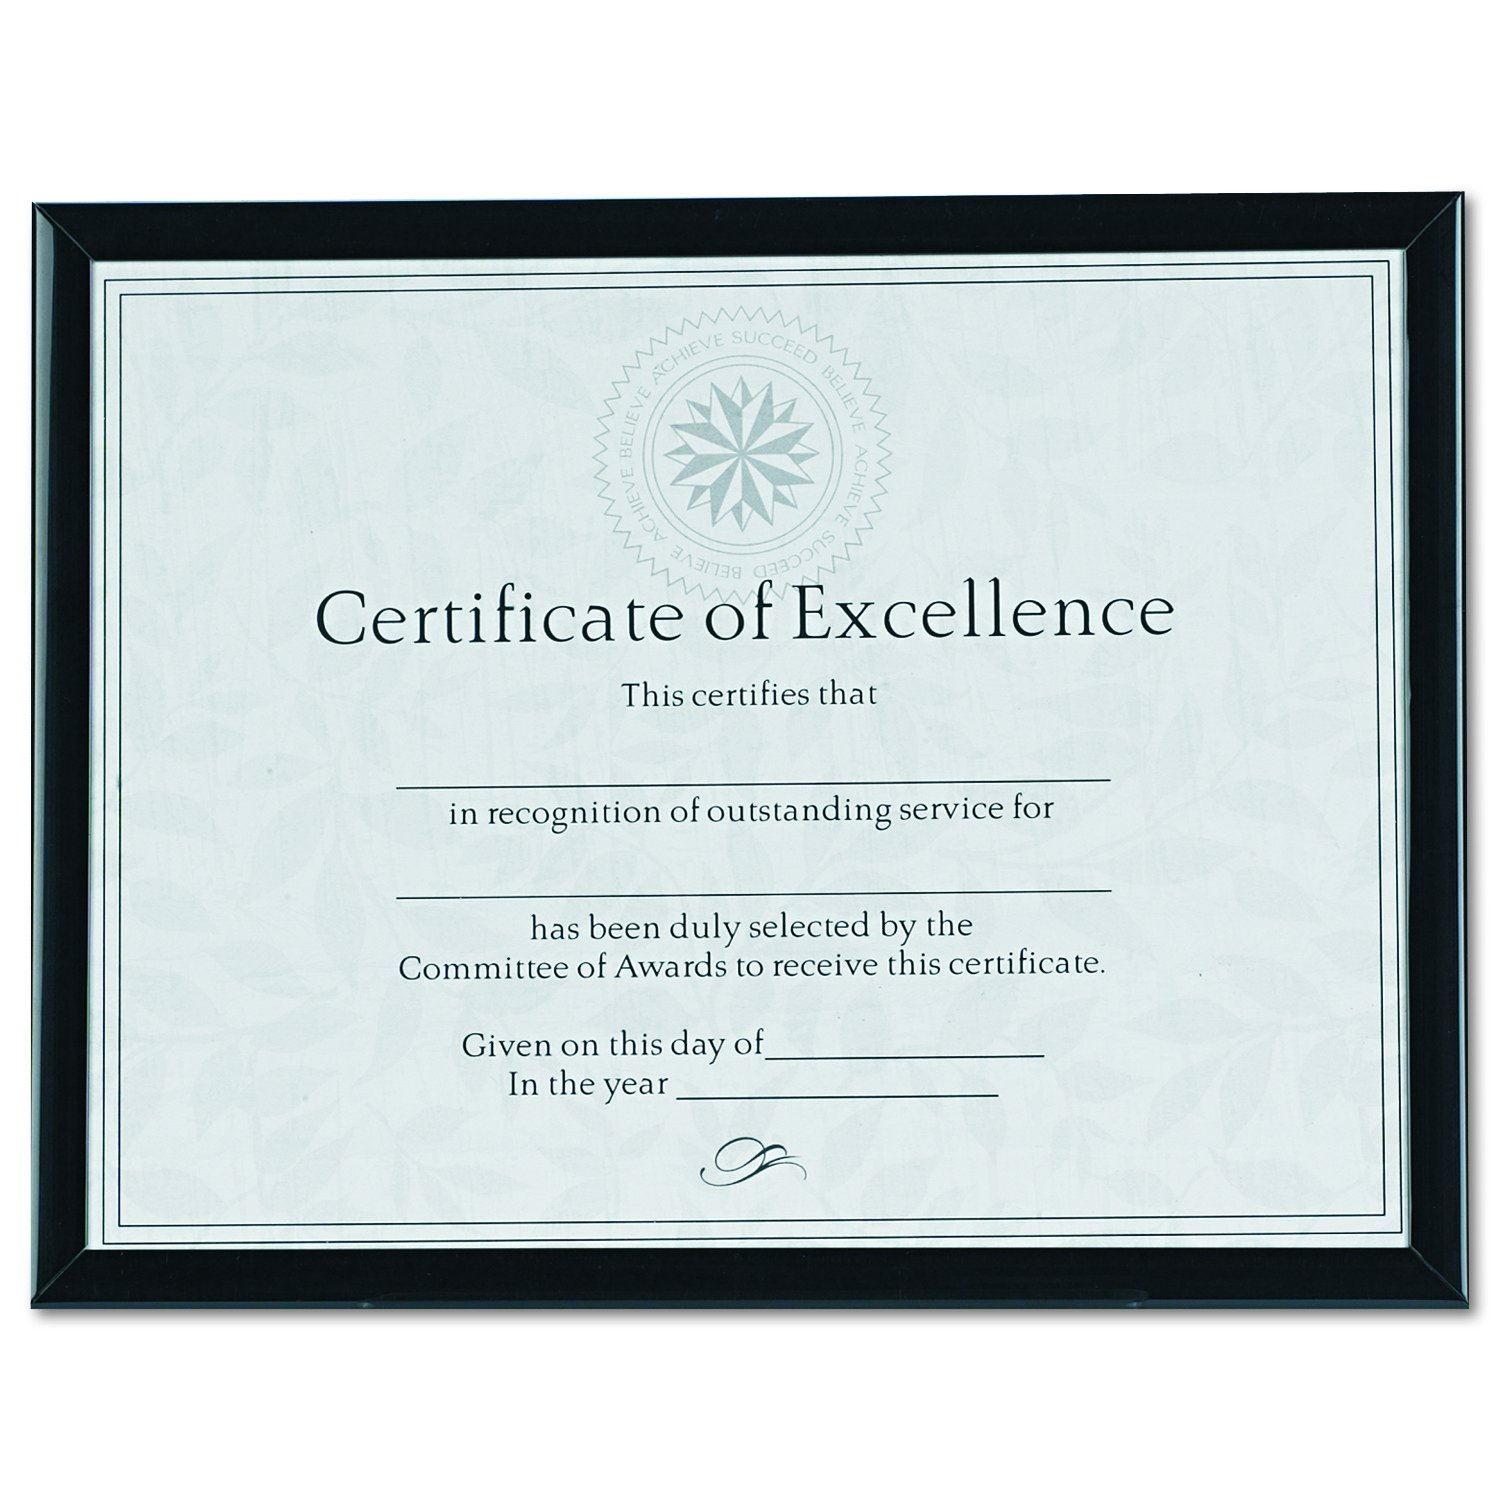 8-1//2 x 11 Inches Silver DAX N17002N Value U-Channel Document Frame with Certificates